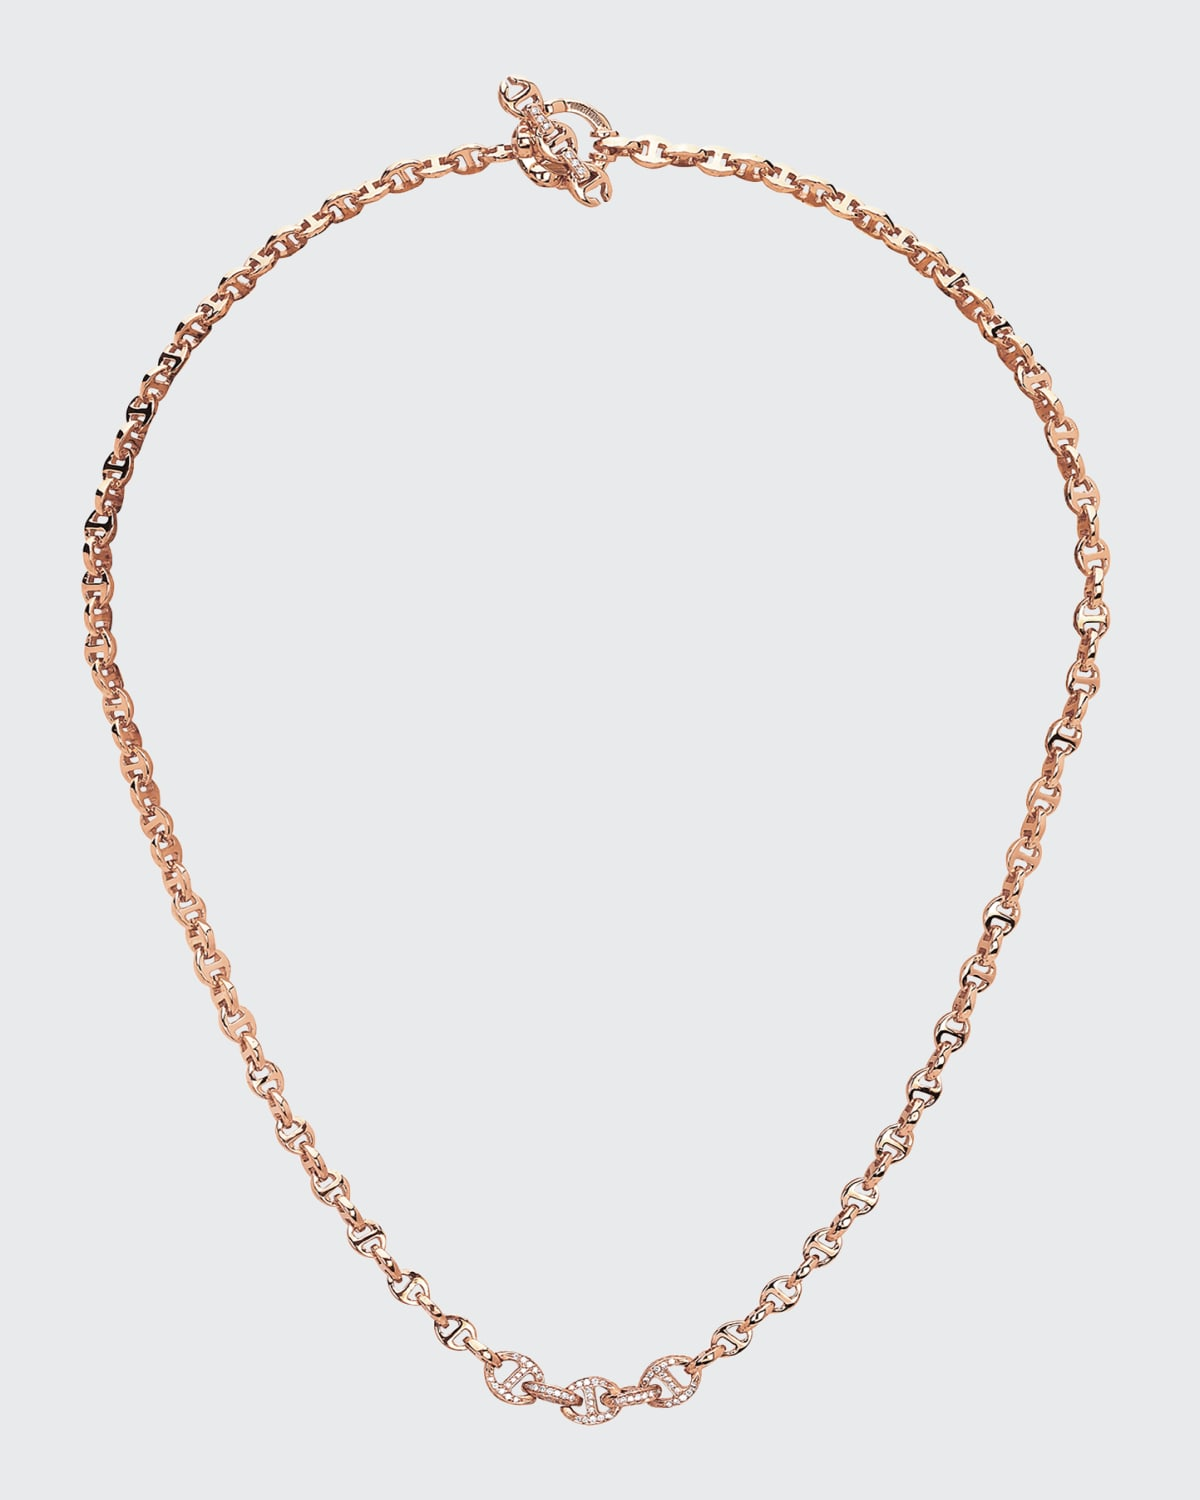 18k Rose Gold 3mm Mini Open-Link Necklace with 5-Link Micro Pave